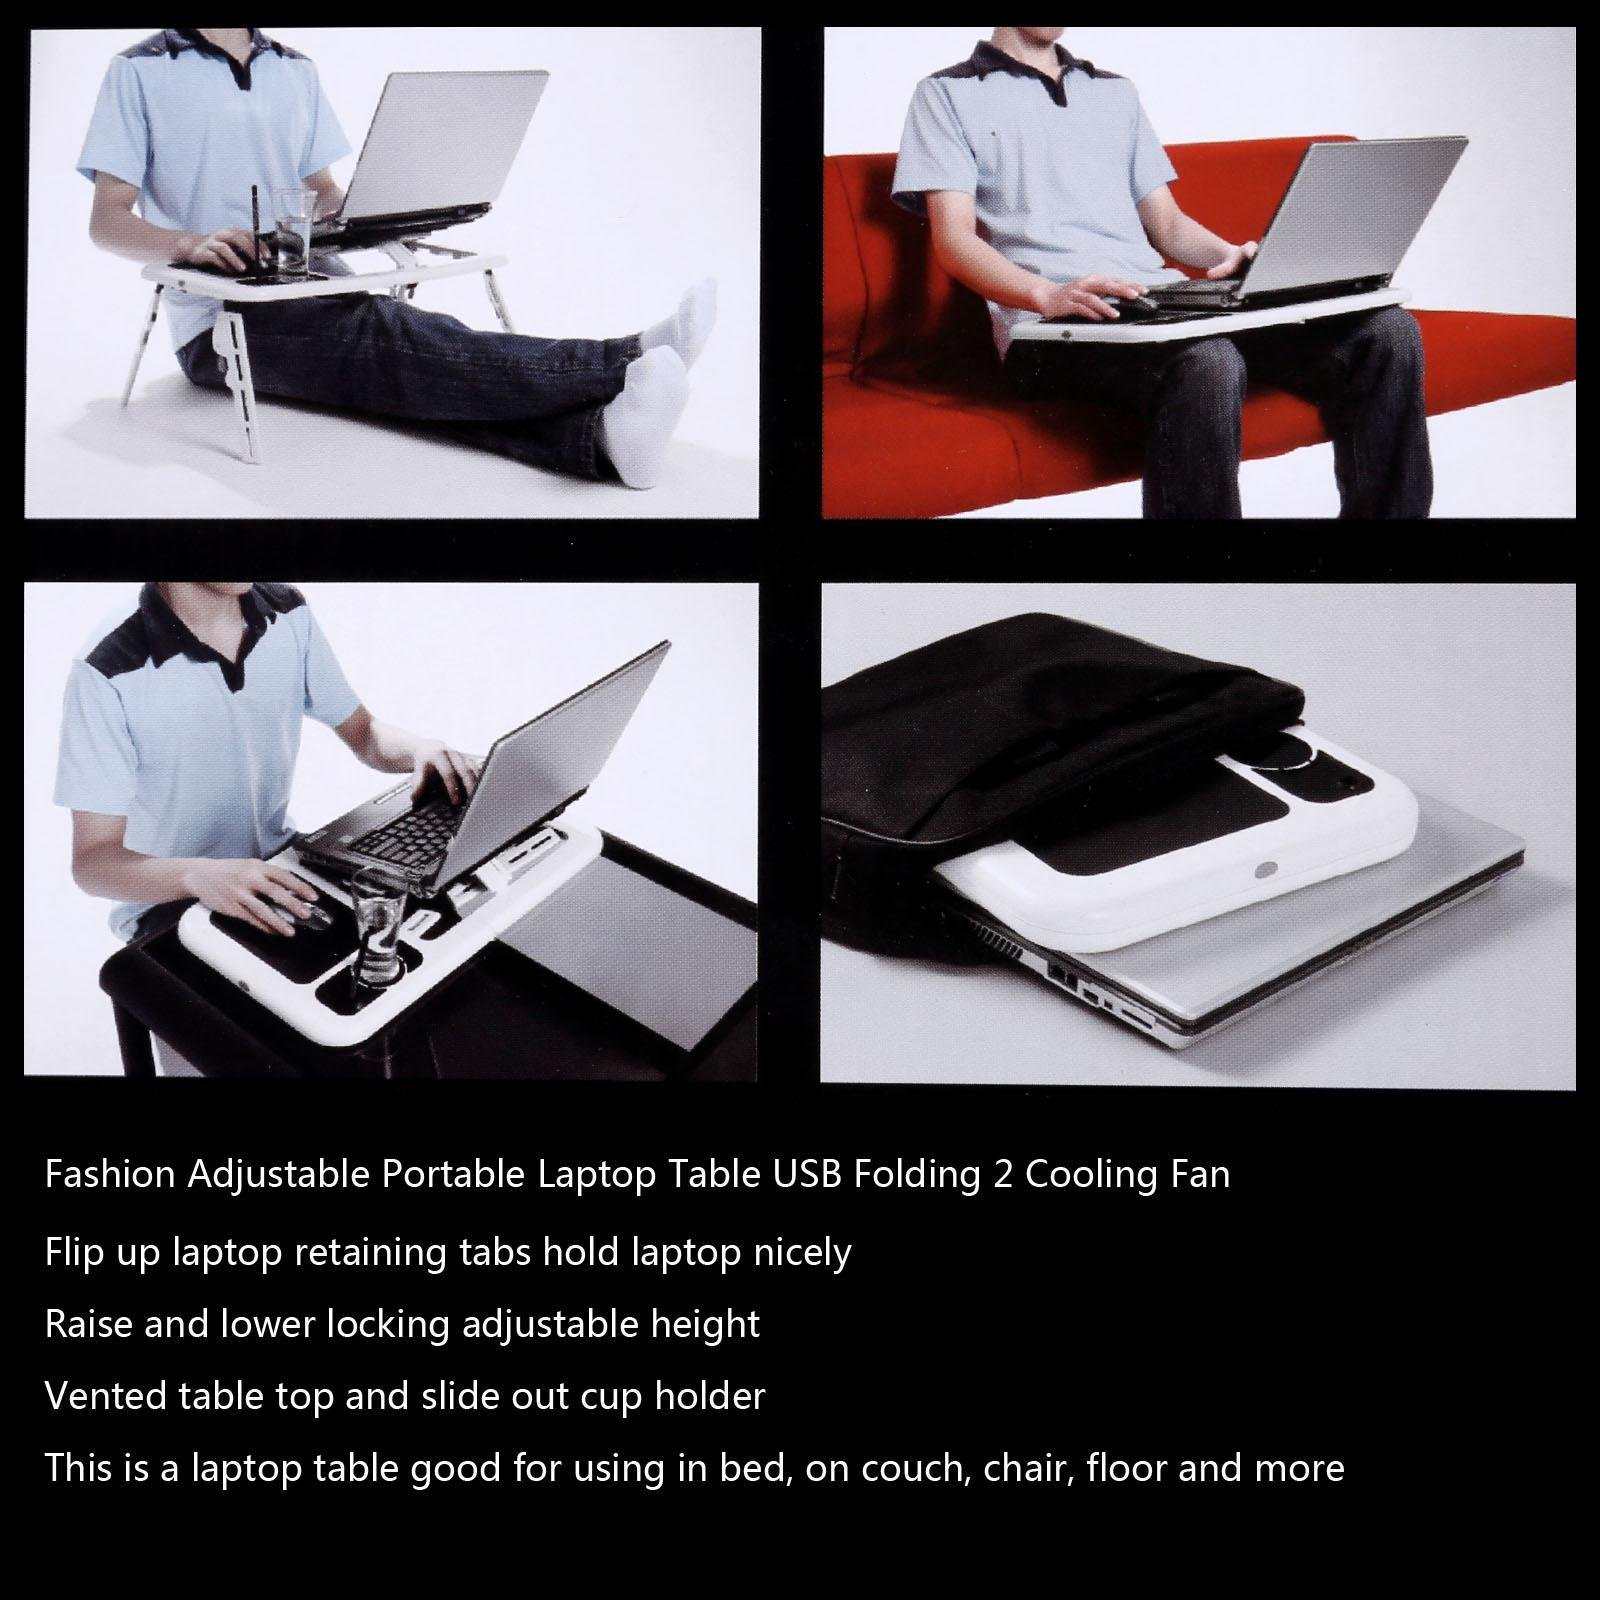 Folding Lap Desk Adjustable Laptop Table for Home, Bed with 2 Cooling Fans, Mouse Pad, Drink Holder and Pen Holder